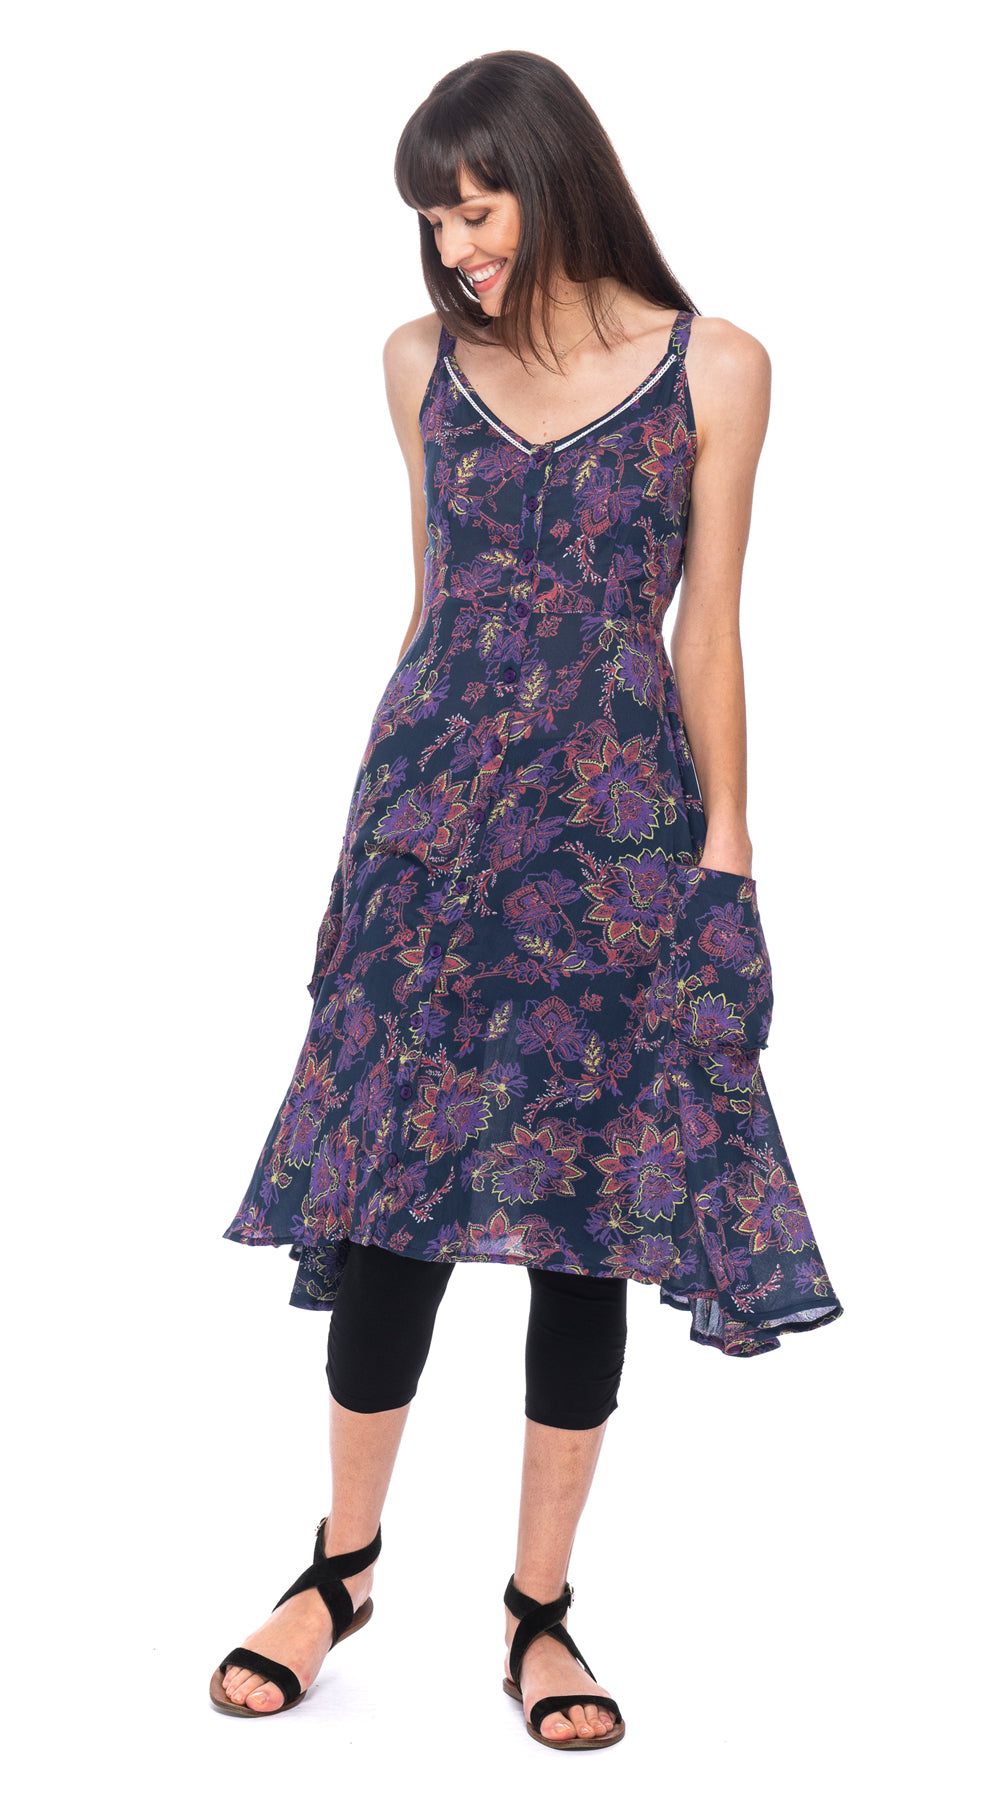 Malibu Dress - rayon crepe - indigo